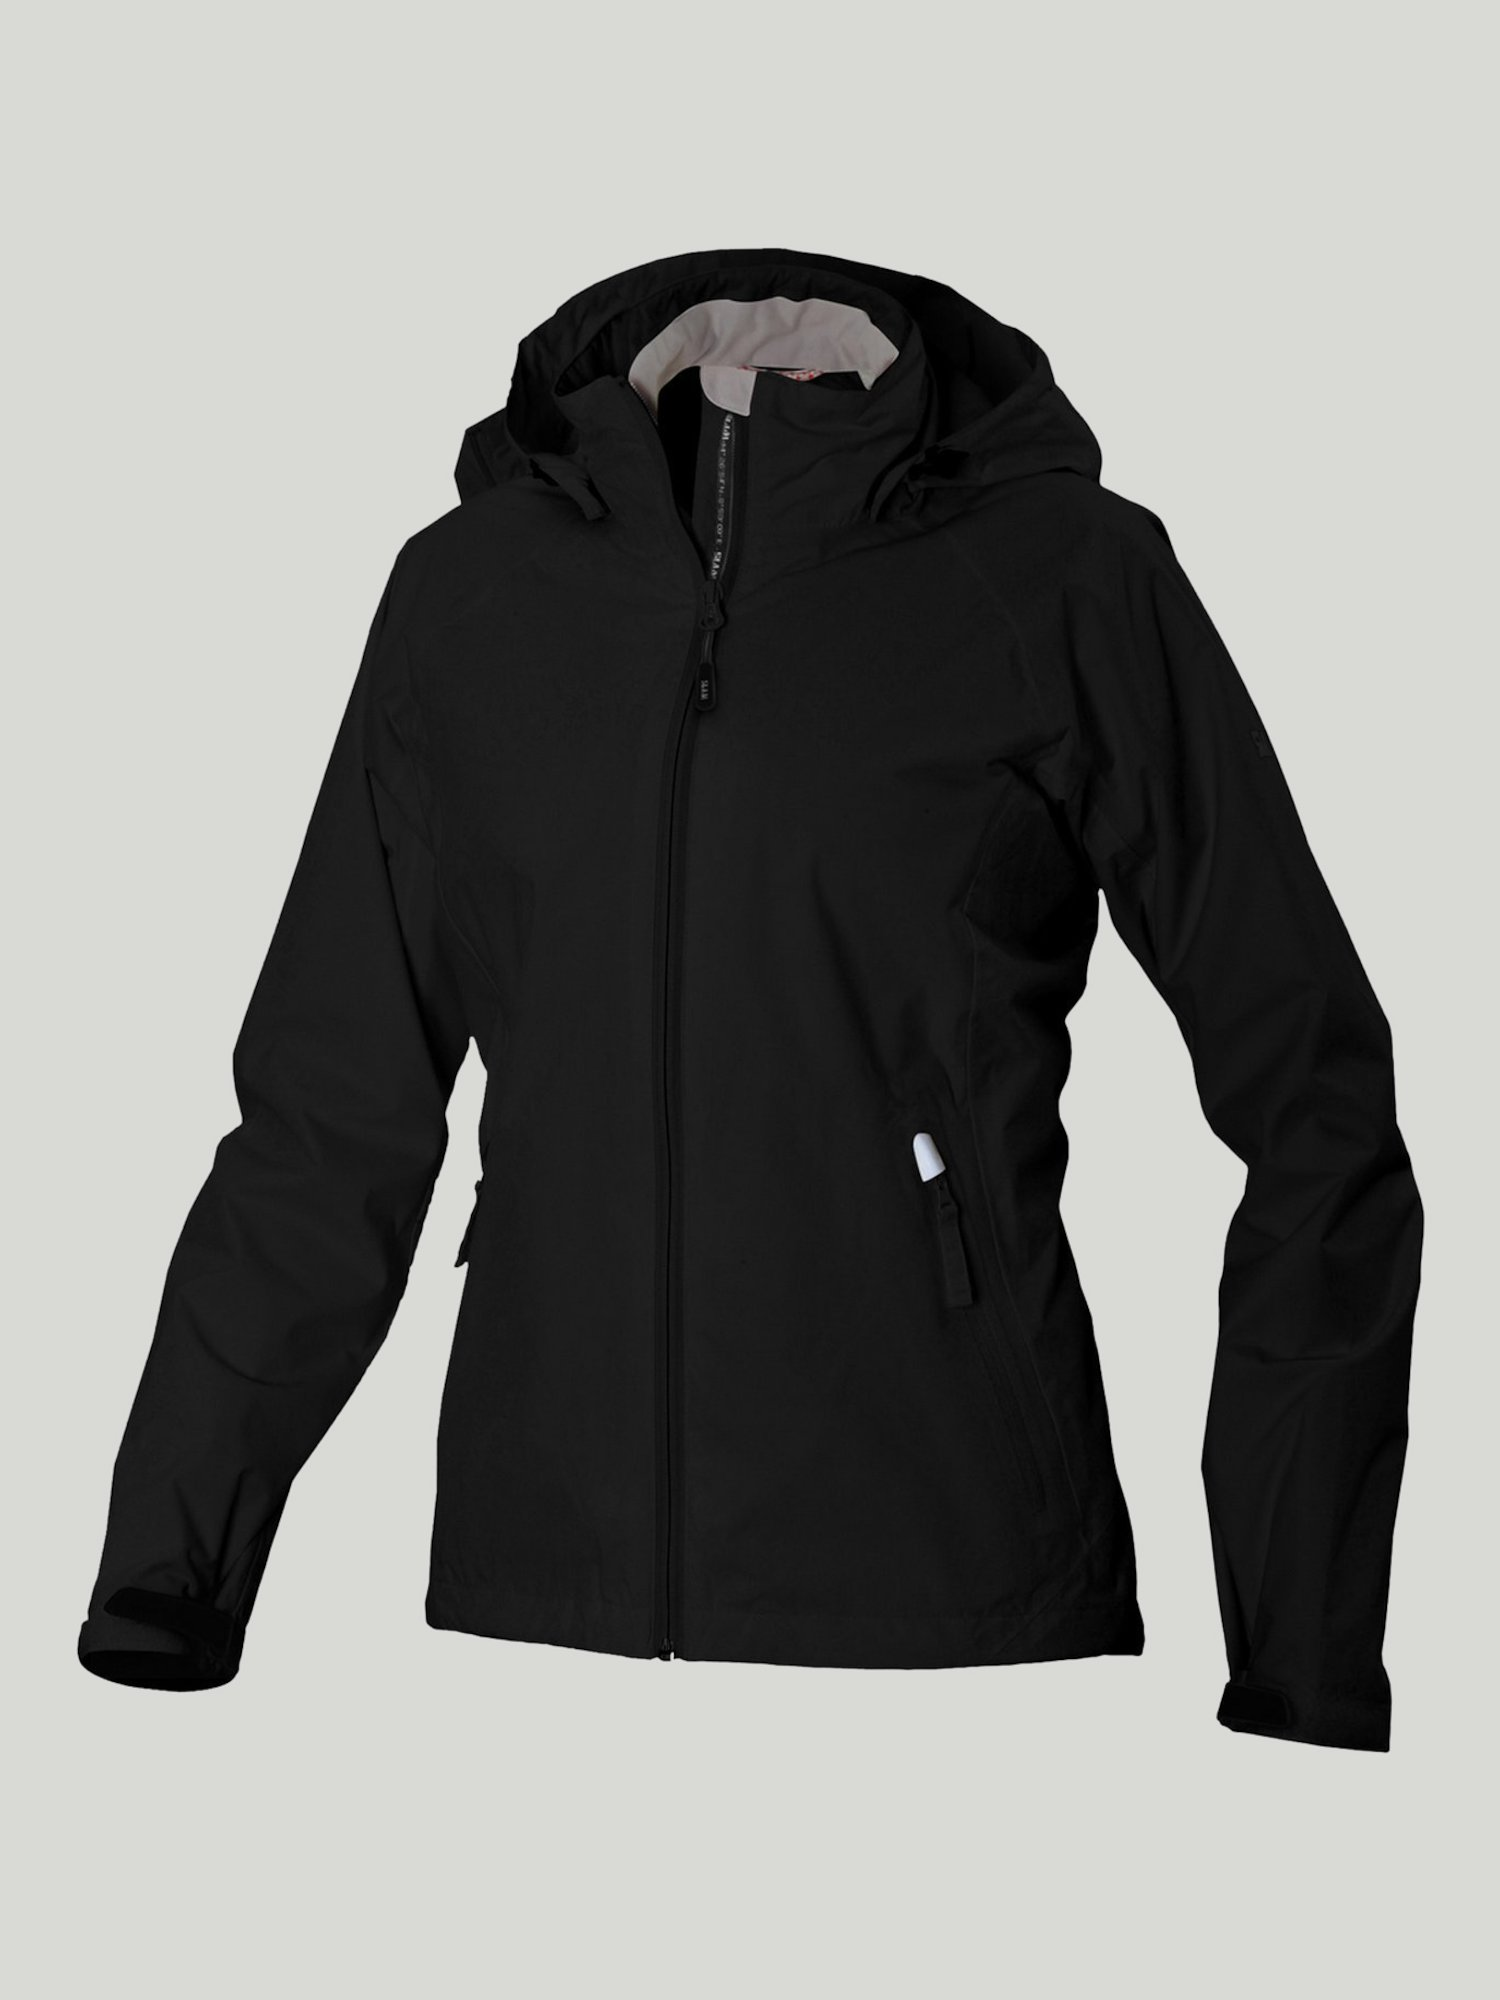 Women's Portofino jacket - Black